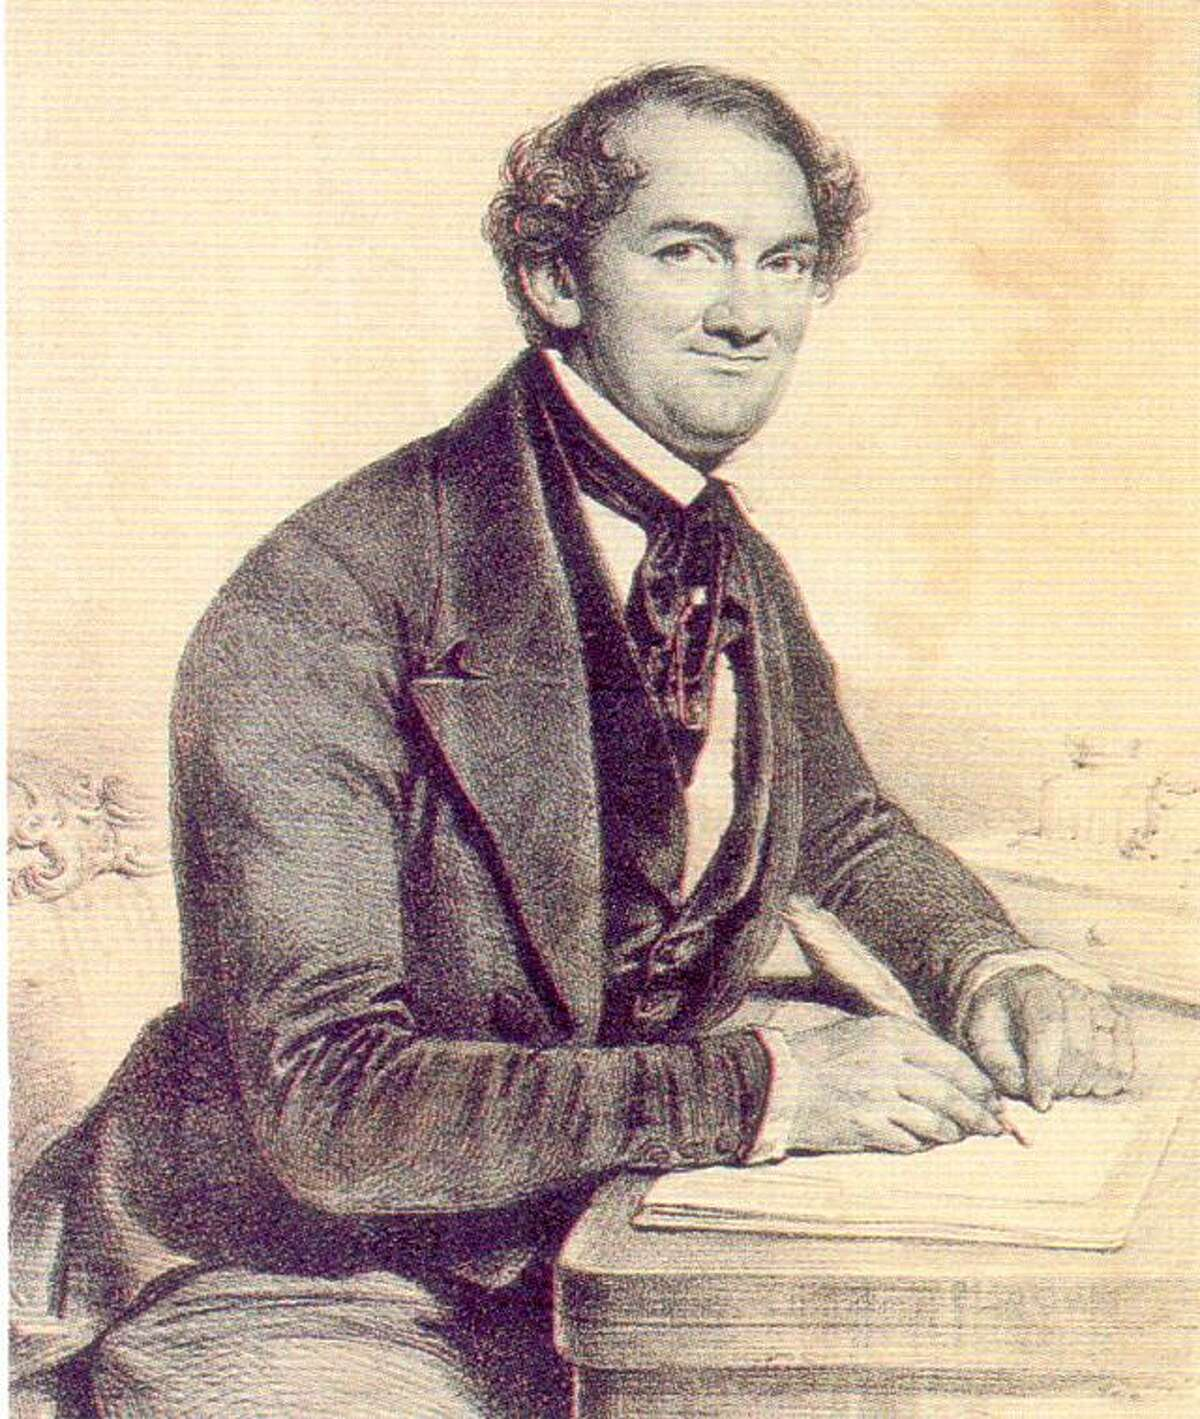 P.T. Barnum in his days as a foreign correspondent